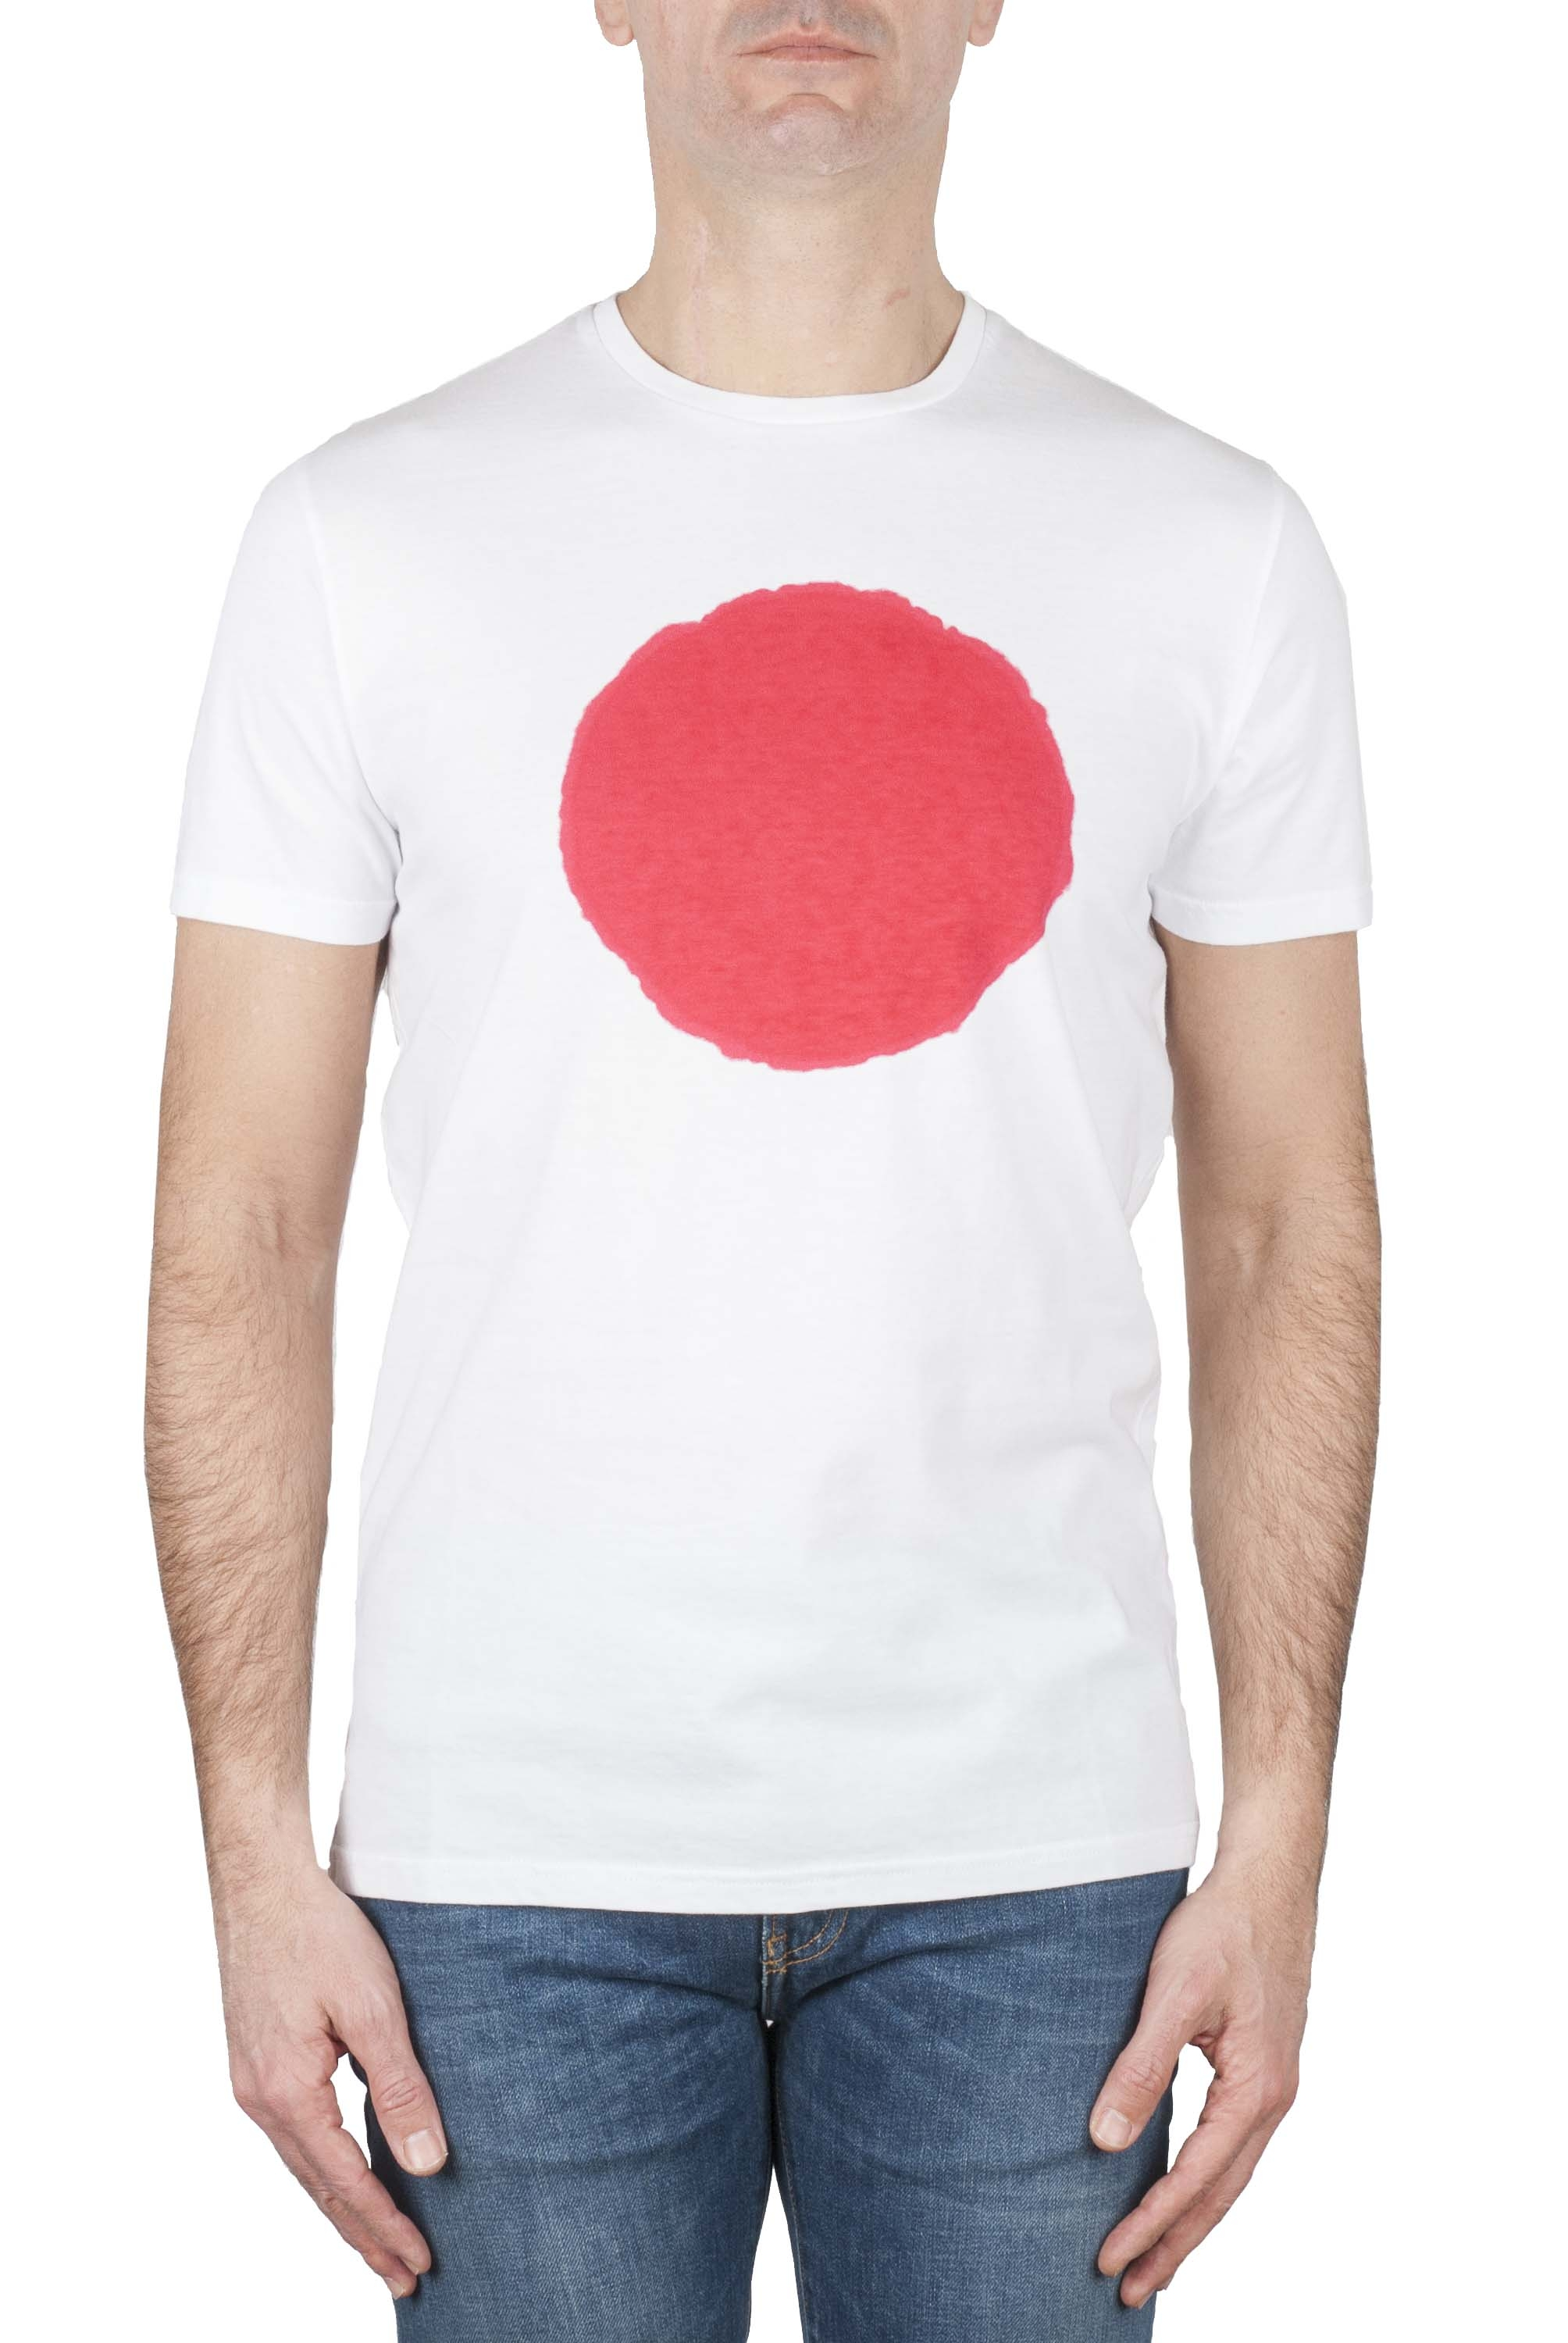 SBU 01170_19AW Classic short sleeve cotton round neck t-shirt red and white printed graphic 01